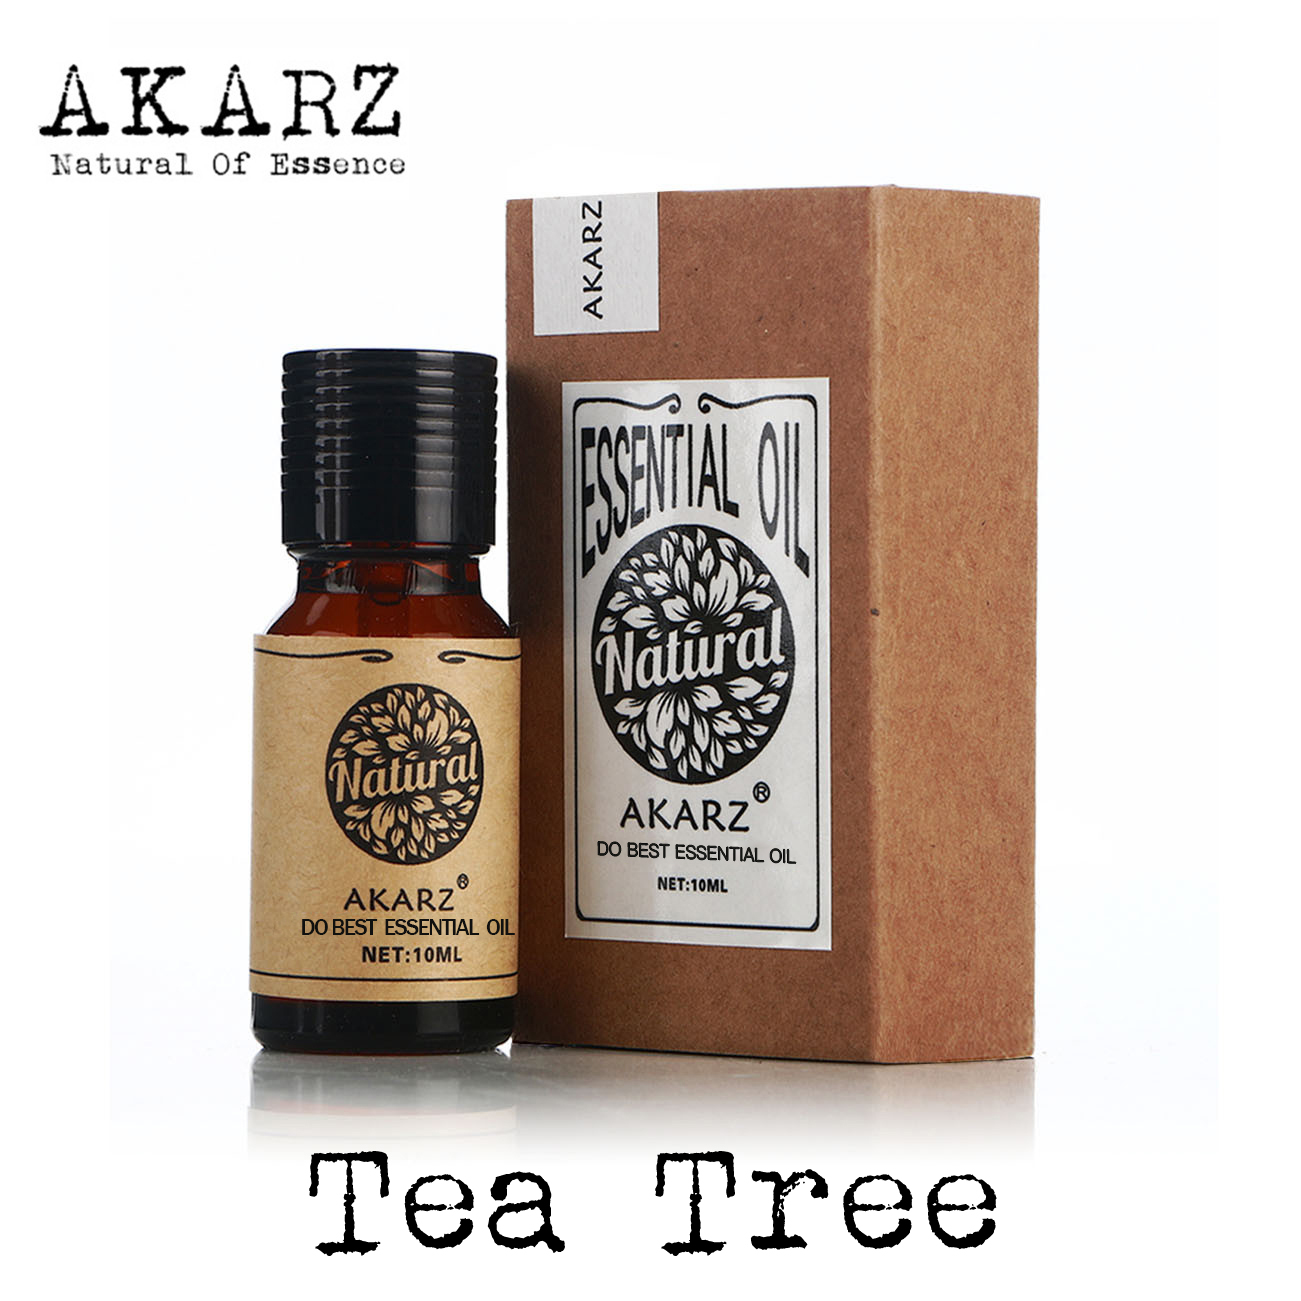 AKARZ Famous brand TEA TREE ESSENTIAL OIL NATURAL TREATMENT FOR ADULTS ORGANIC skin body massage care TEA TREE oil